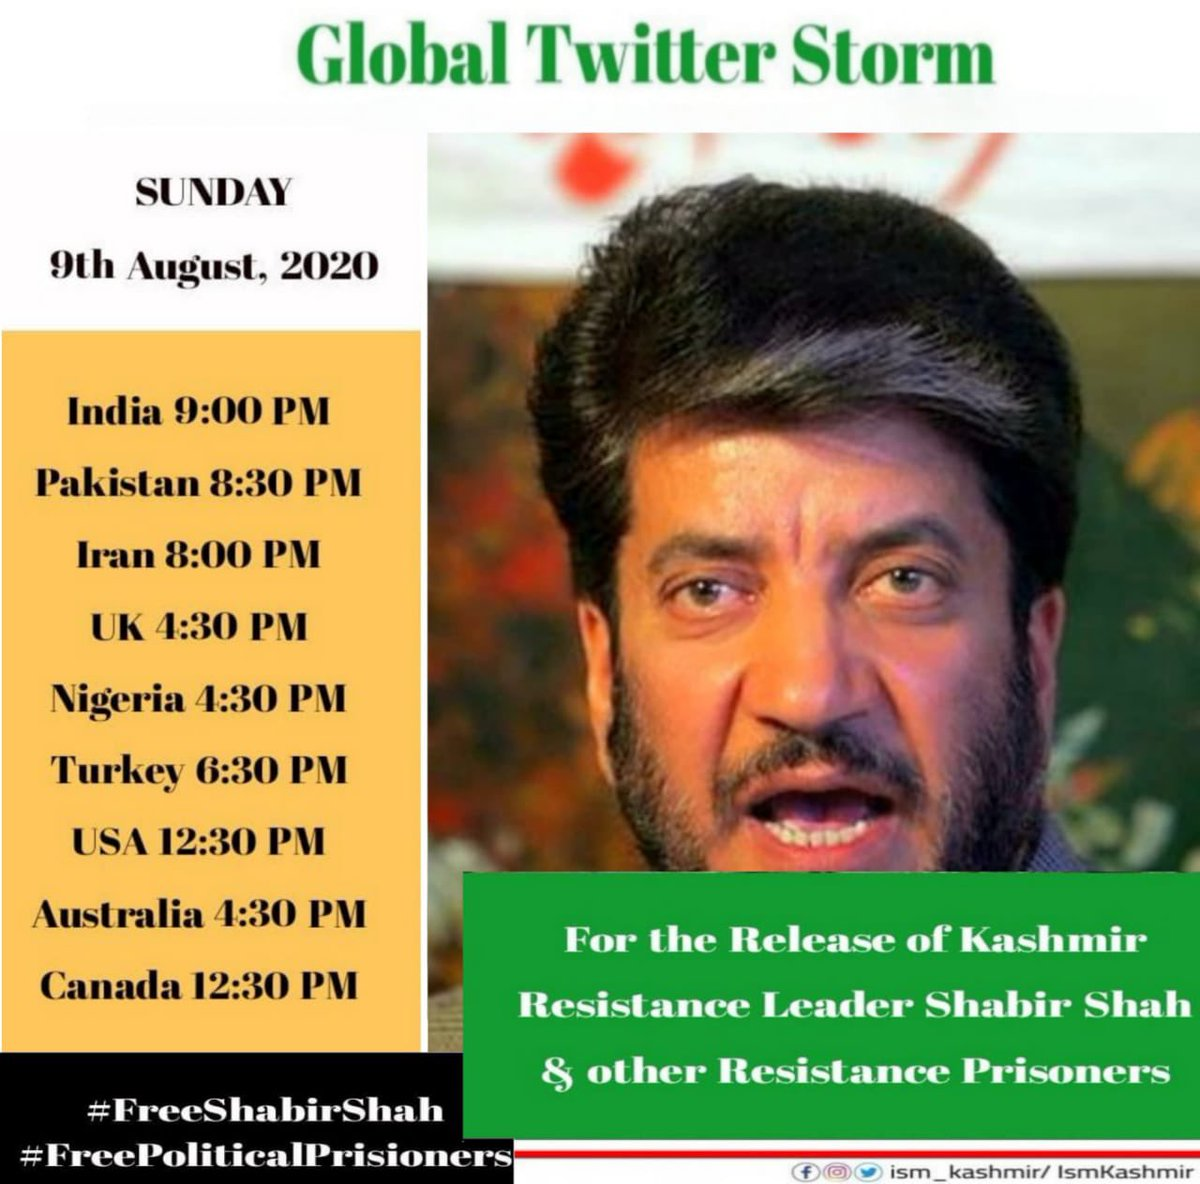 Please do support this campaign There will be a Global Twitter Storm on Sunday 9thAugust regarding all the political prisoners and my father Shabir Shah who has spent 33 years in jail also known as thePRISONER OF CONCOENCE use the hashtag #FreeShabirShah #FreePoliticalPrisoners https://t.co/Pthg9GmYND